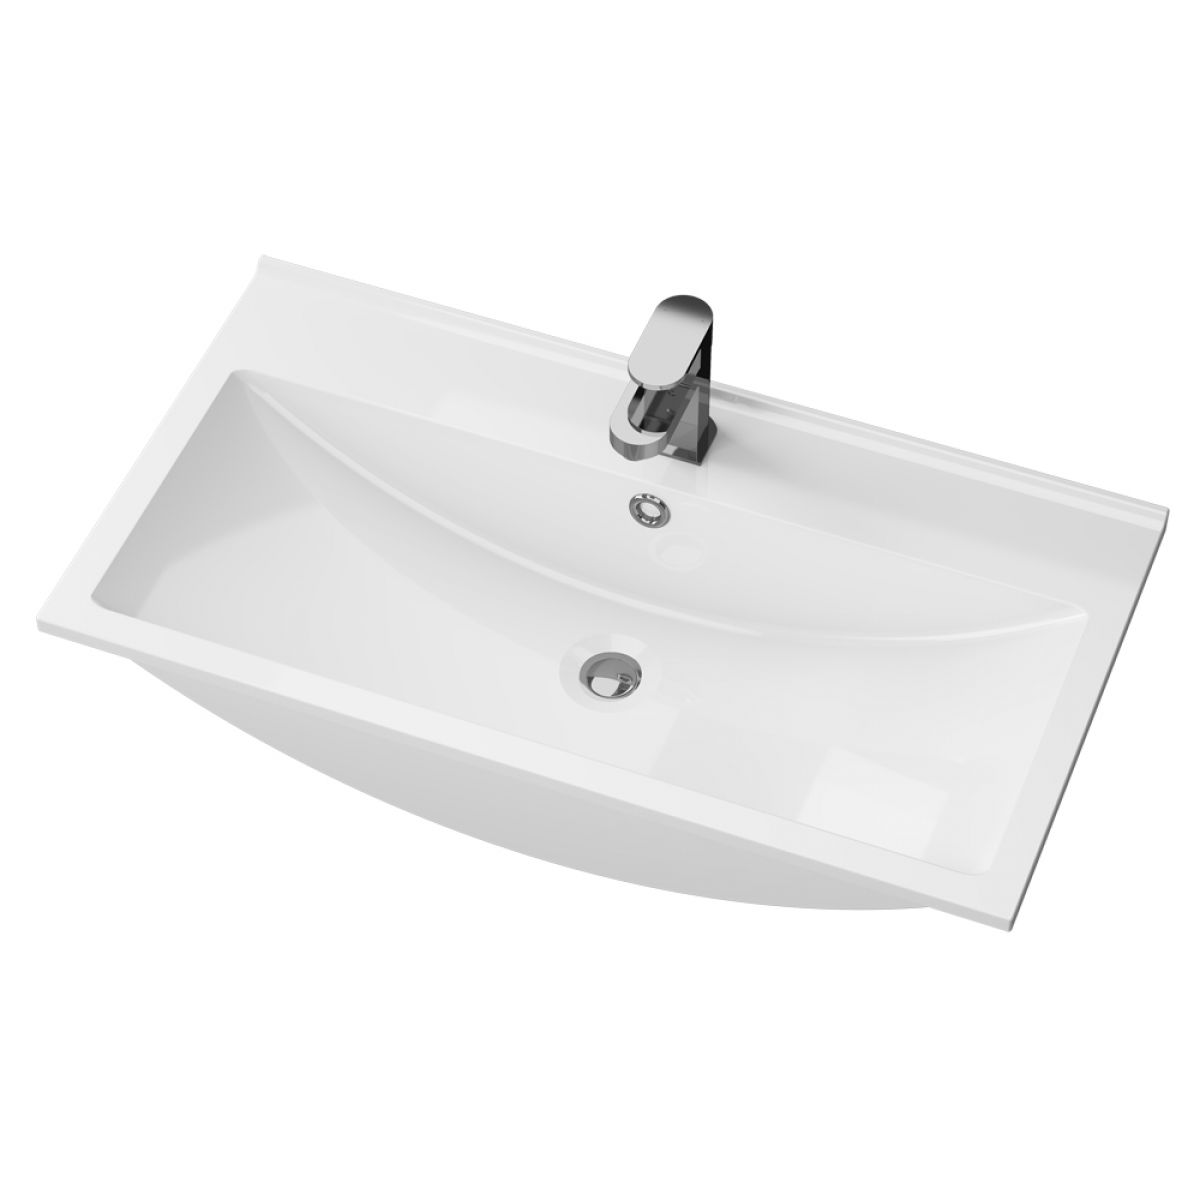 Cassellie Idon Polymarble Thin Edge Basin 800mm